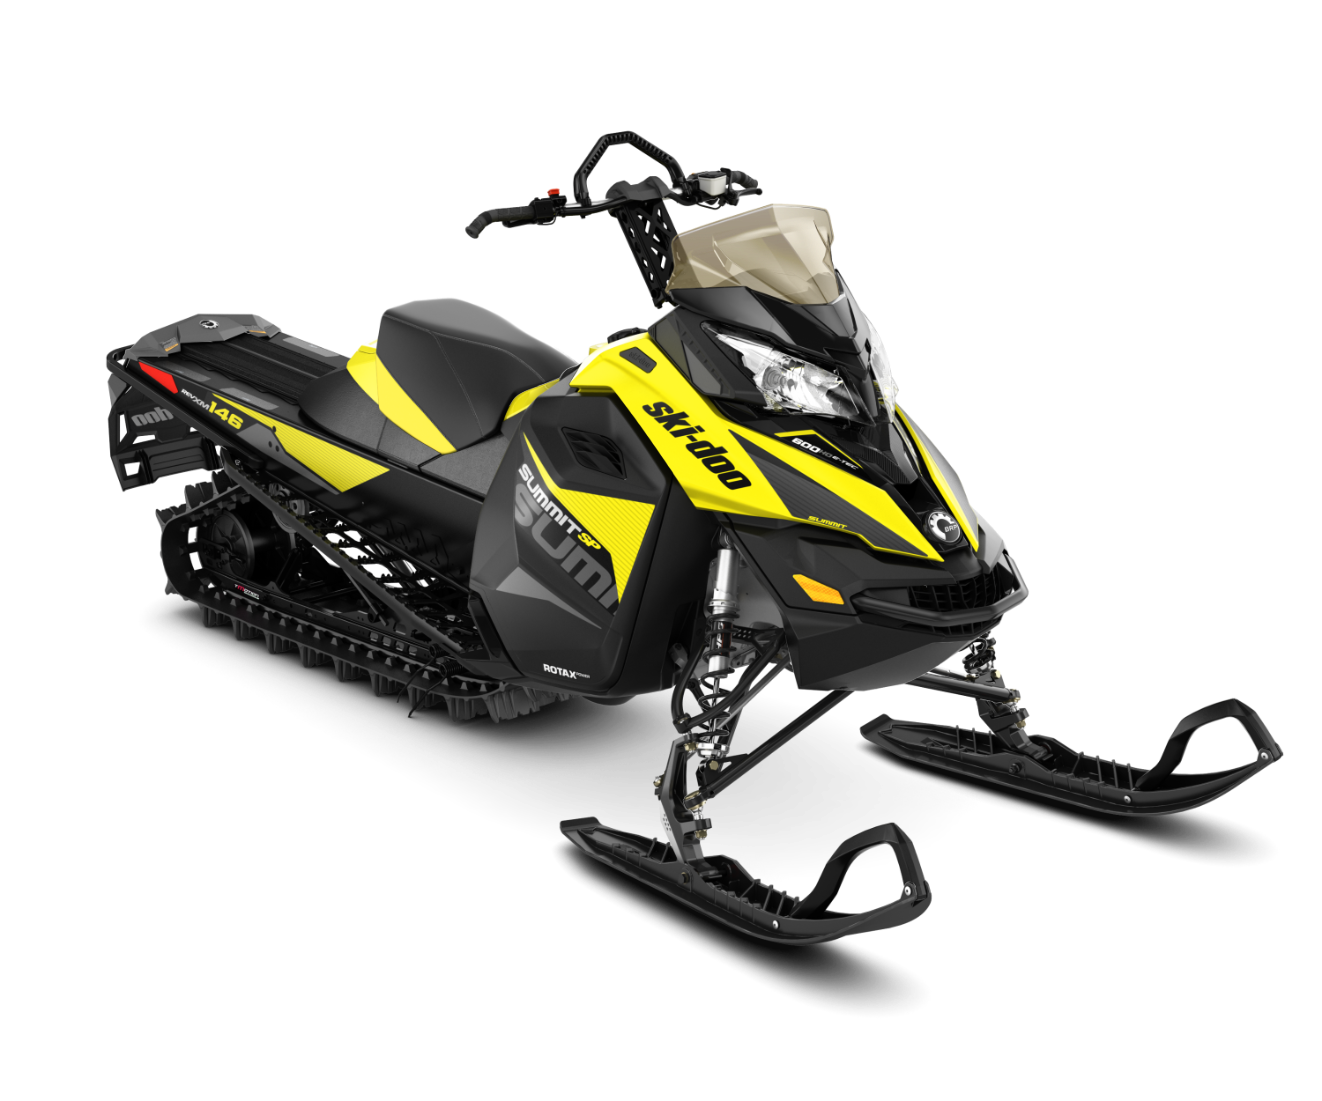 2018 Ski-Doo Summit SP 146 600 H.O. E-TEC in Huron, Ohio